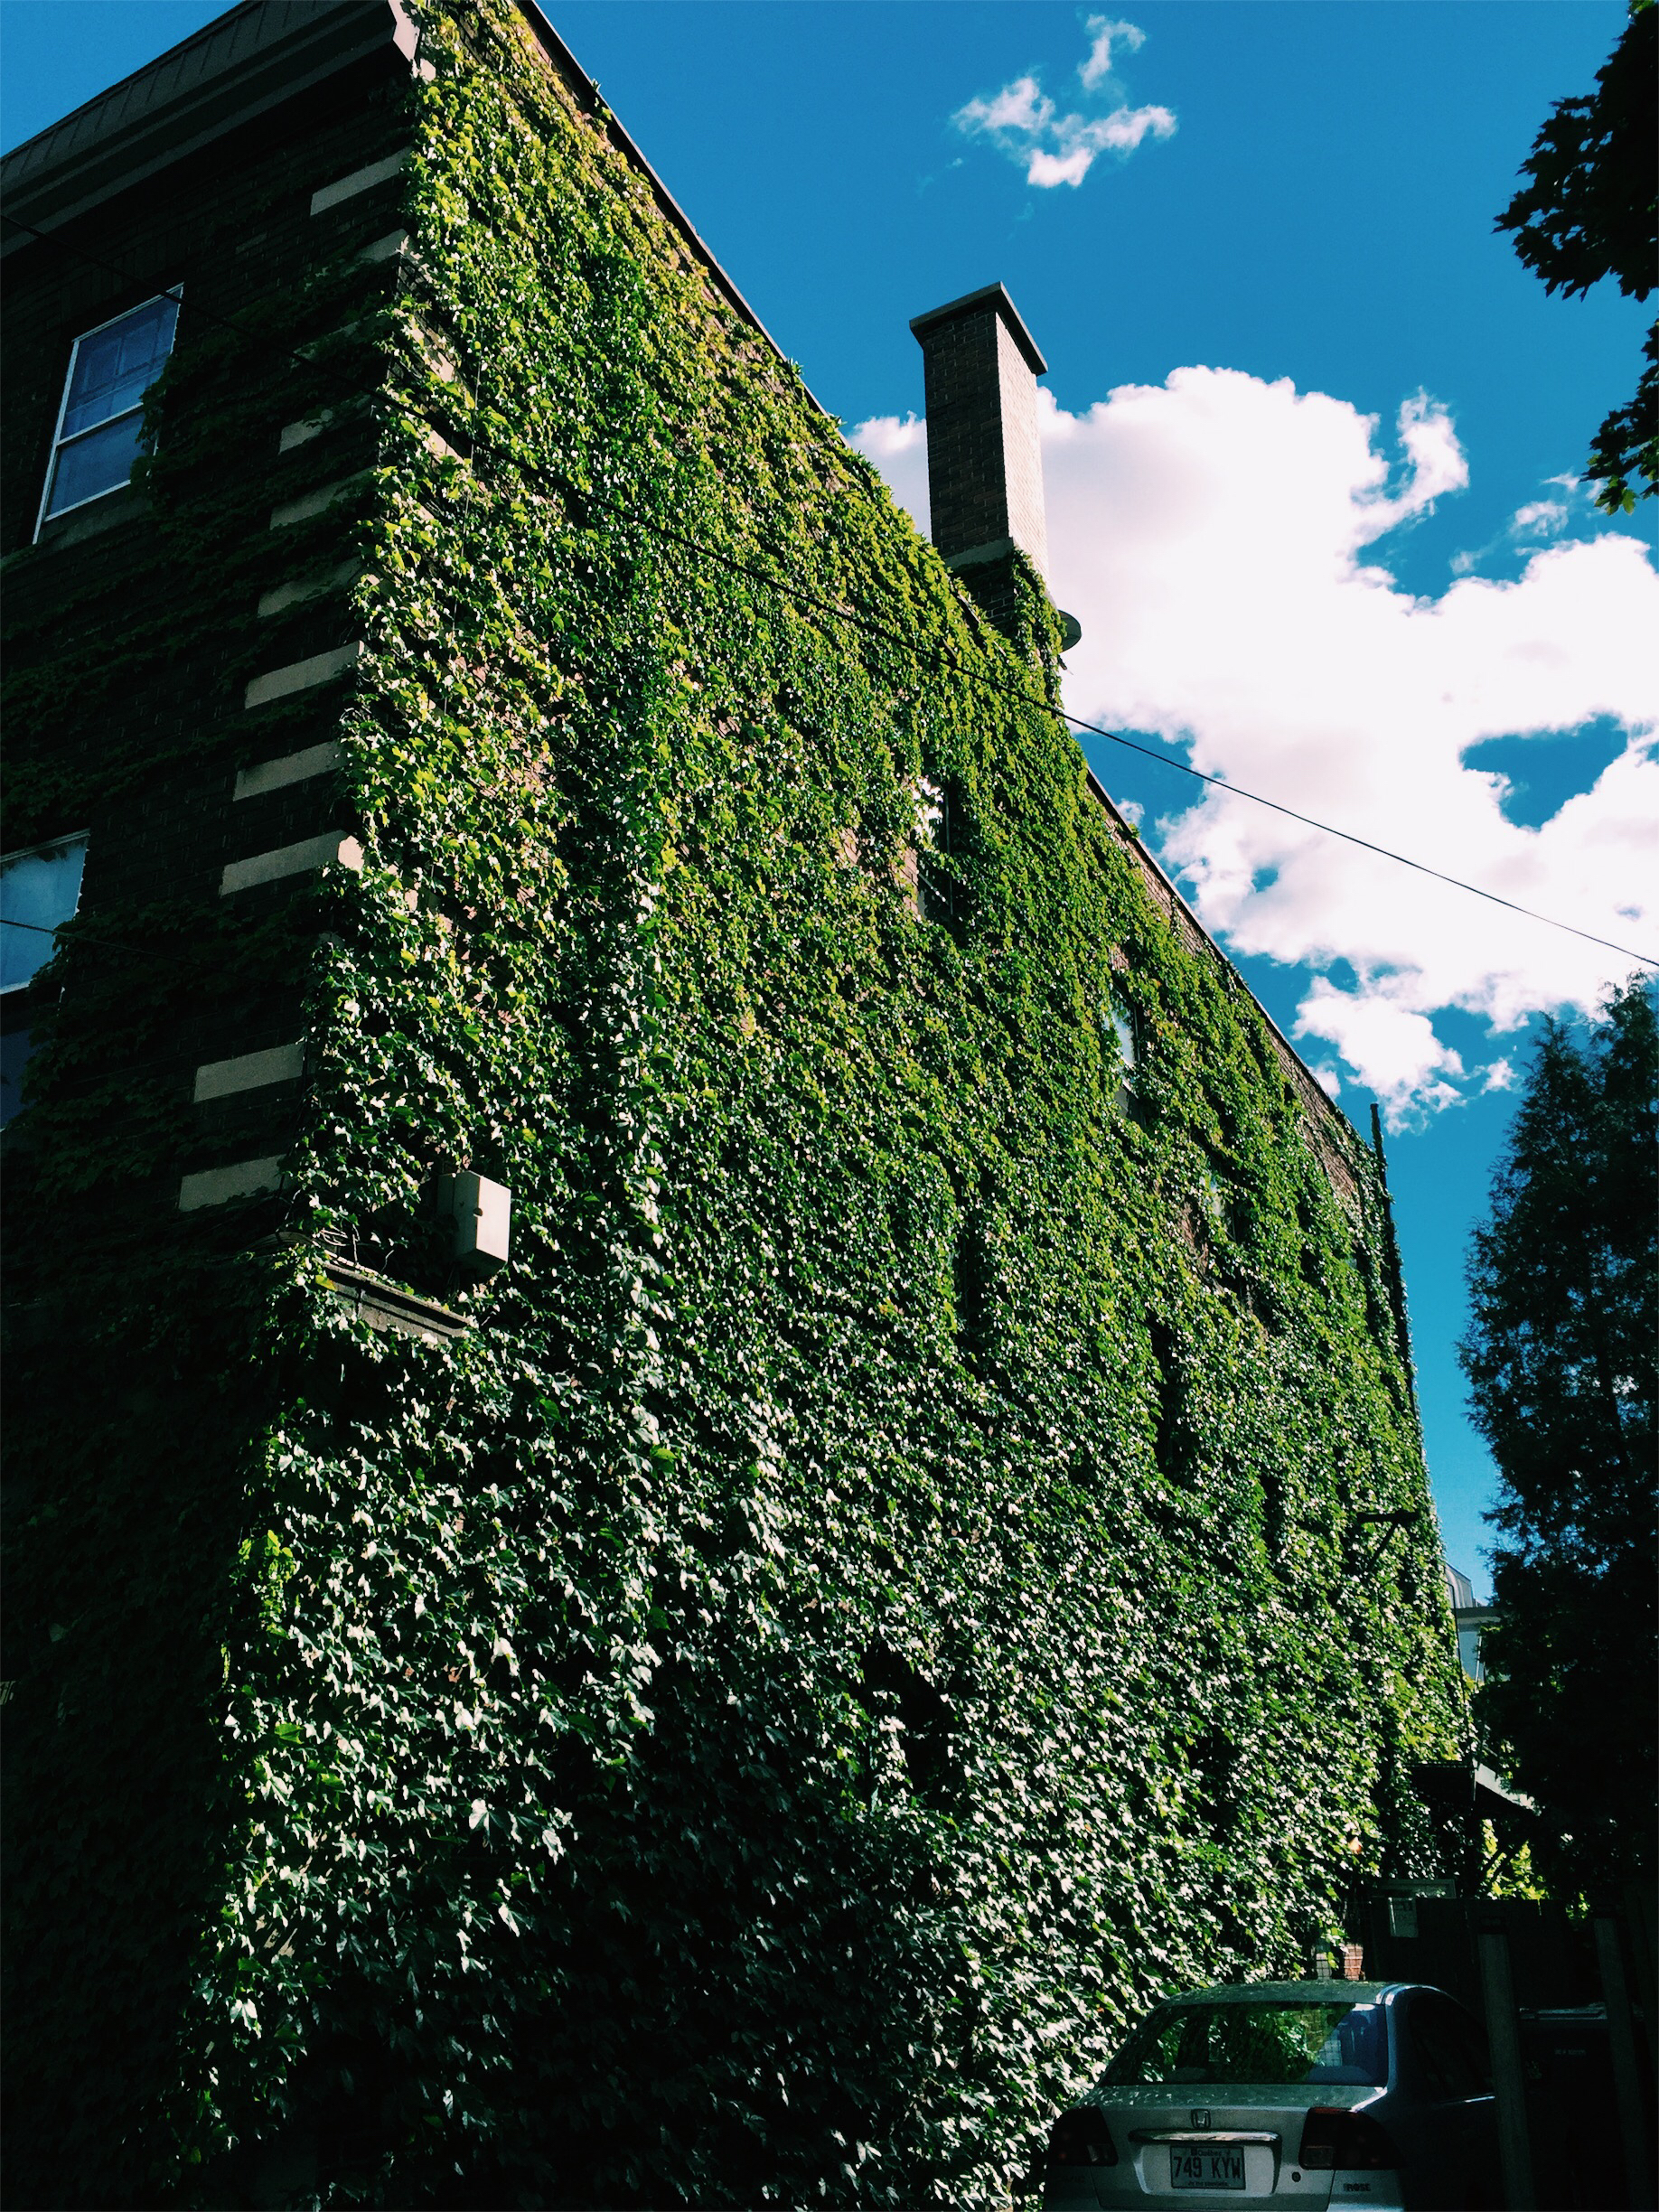 Ivy-laced apartment in Monkland Village via Lora Weaver Mysteries by Katy Leen